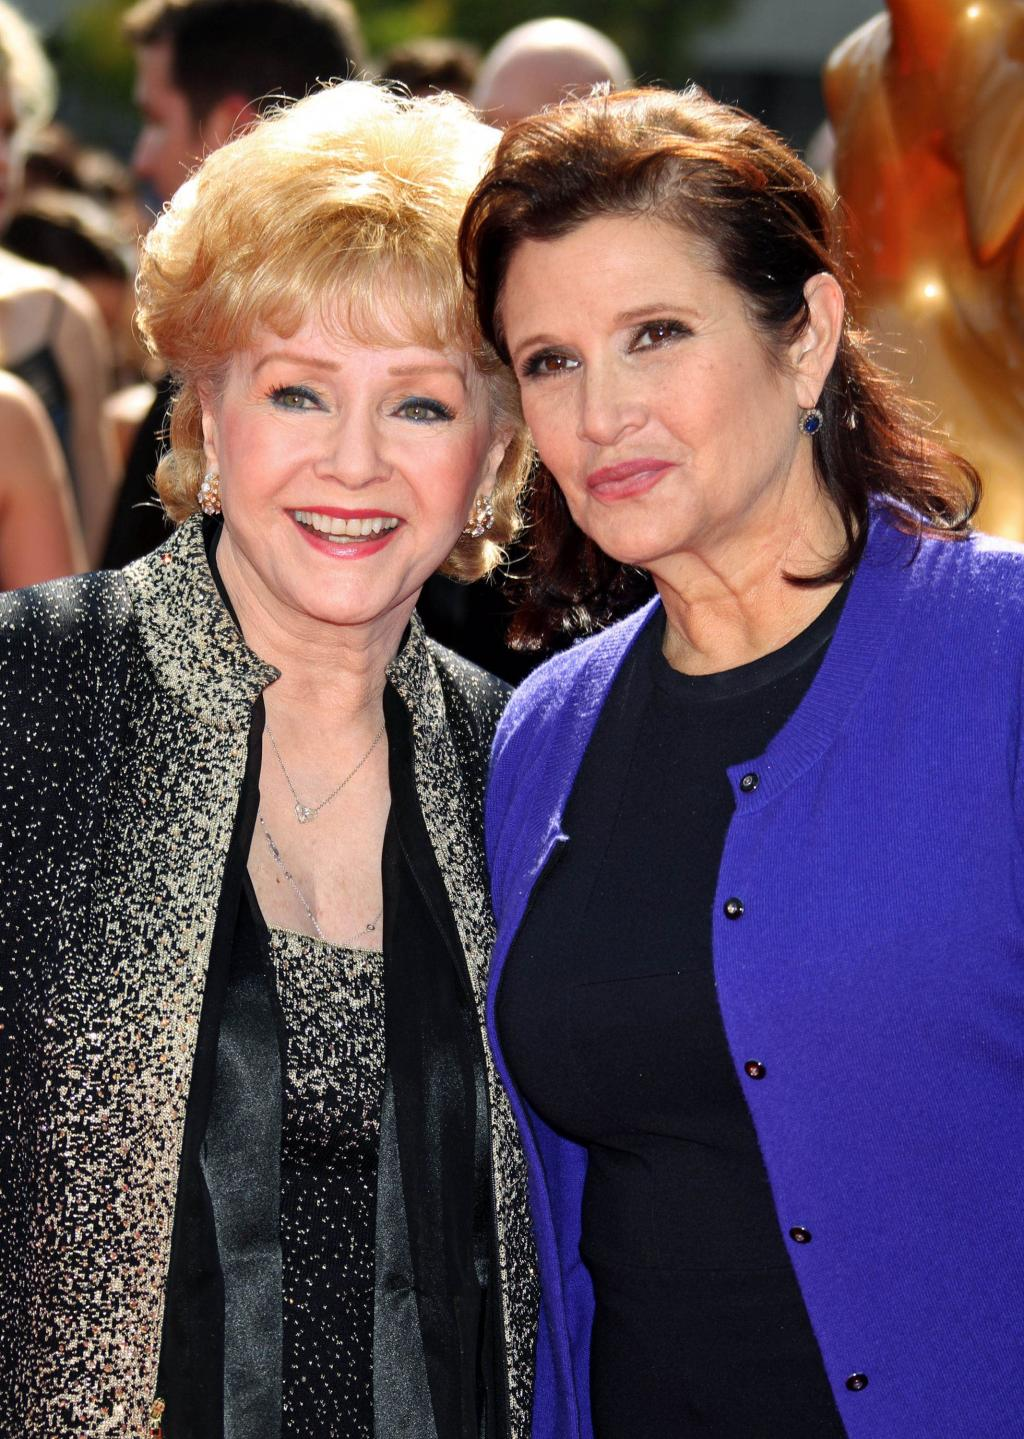 Read HBO Bright Lights Directors' Touching Tribute to Carrie Fisher and Debbie Reynolds: We Made 'a Film about Love'